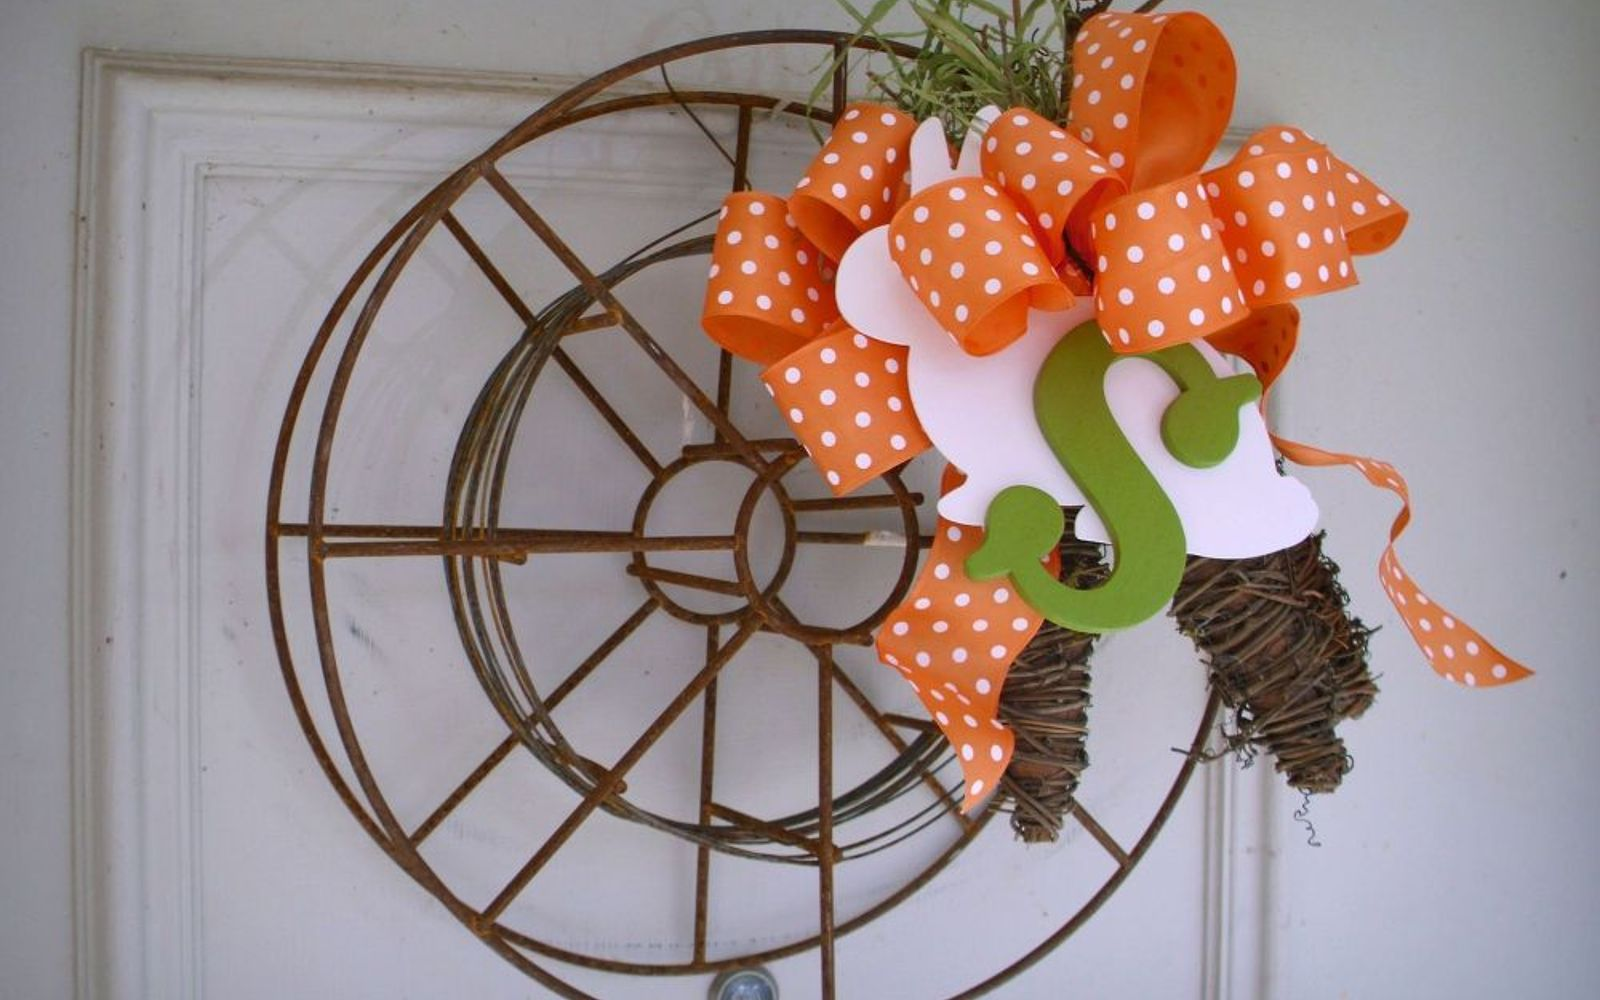 s 31 gorgeous spring wreaths that will make your neighbors smile, crafts, seasonal holiday decor, wreaths, Upcycle an interesting find